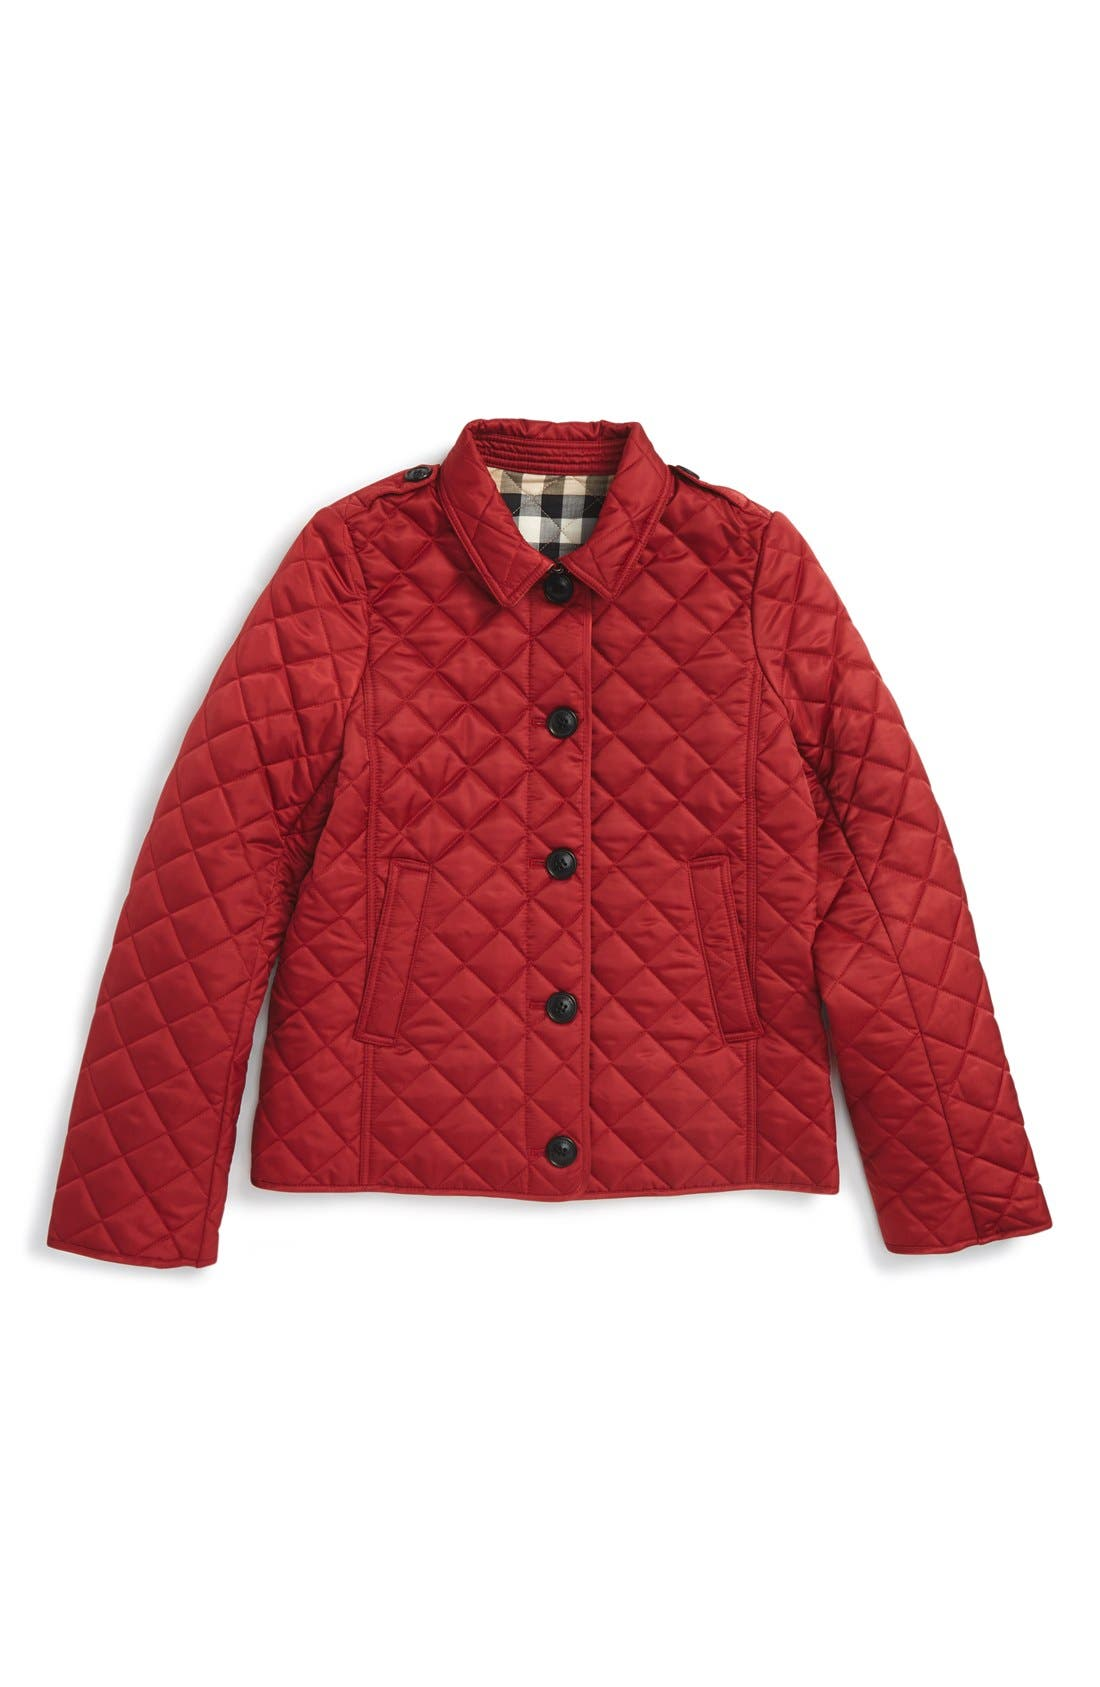 'Mini Ashurst' Quilted Jacket,                             Main thumbnail 1, color,